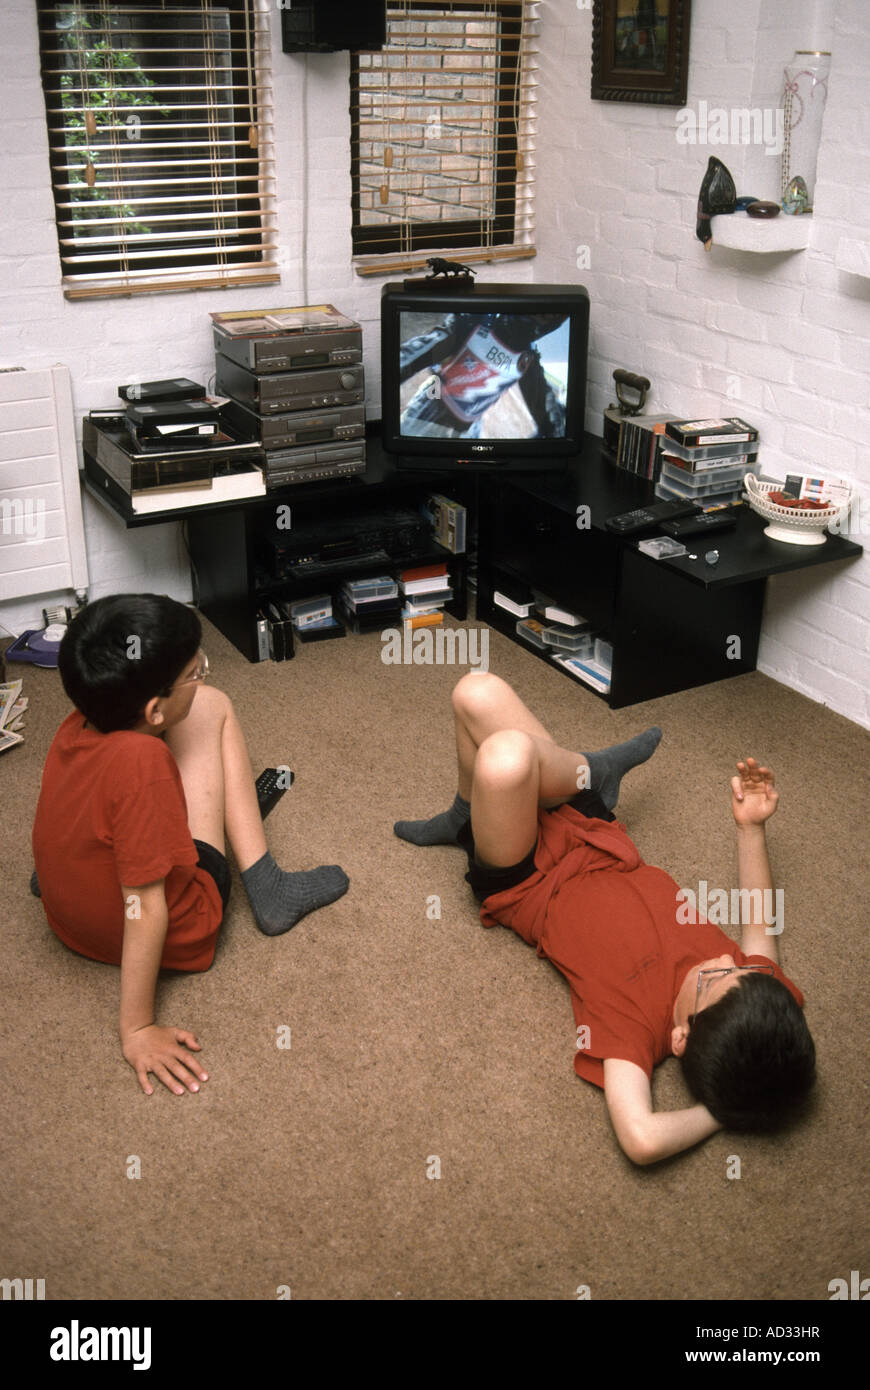 Two brothers lounging in front of the television - Stock Image